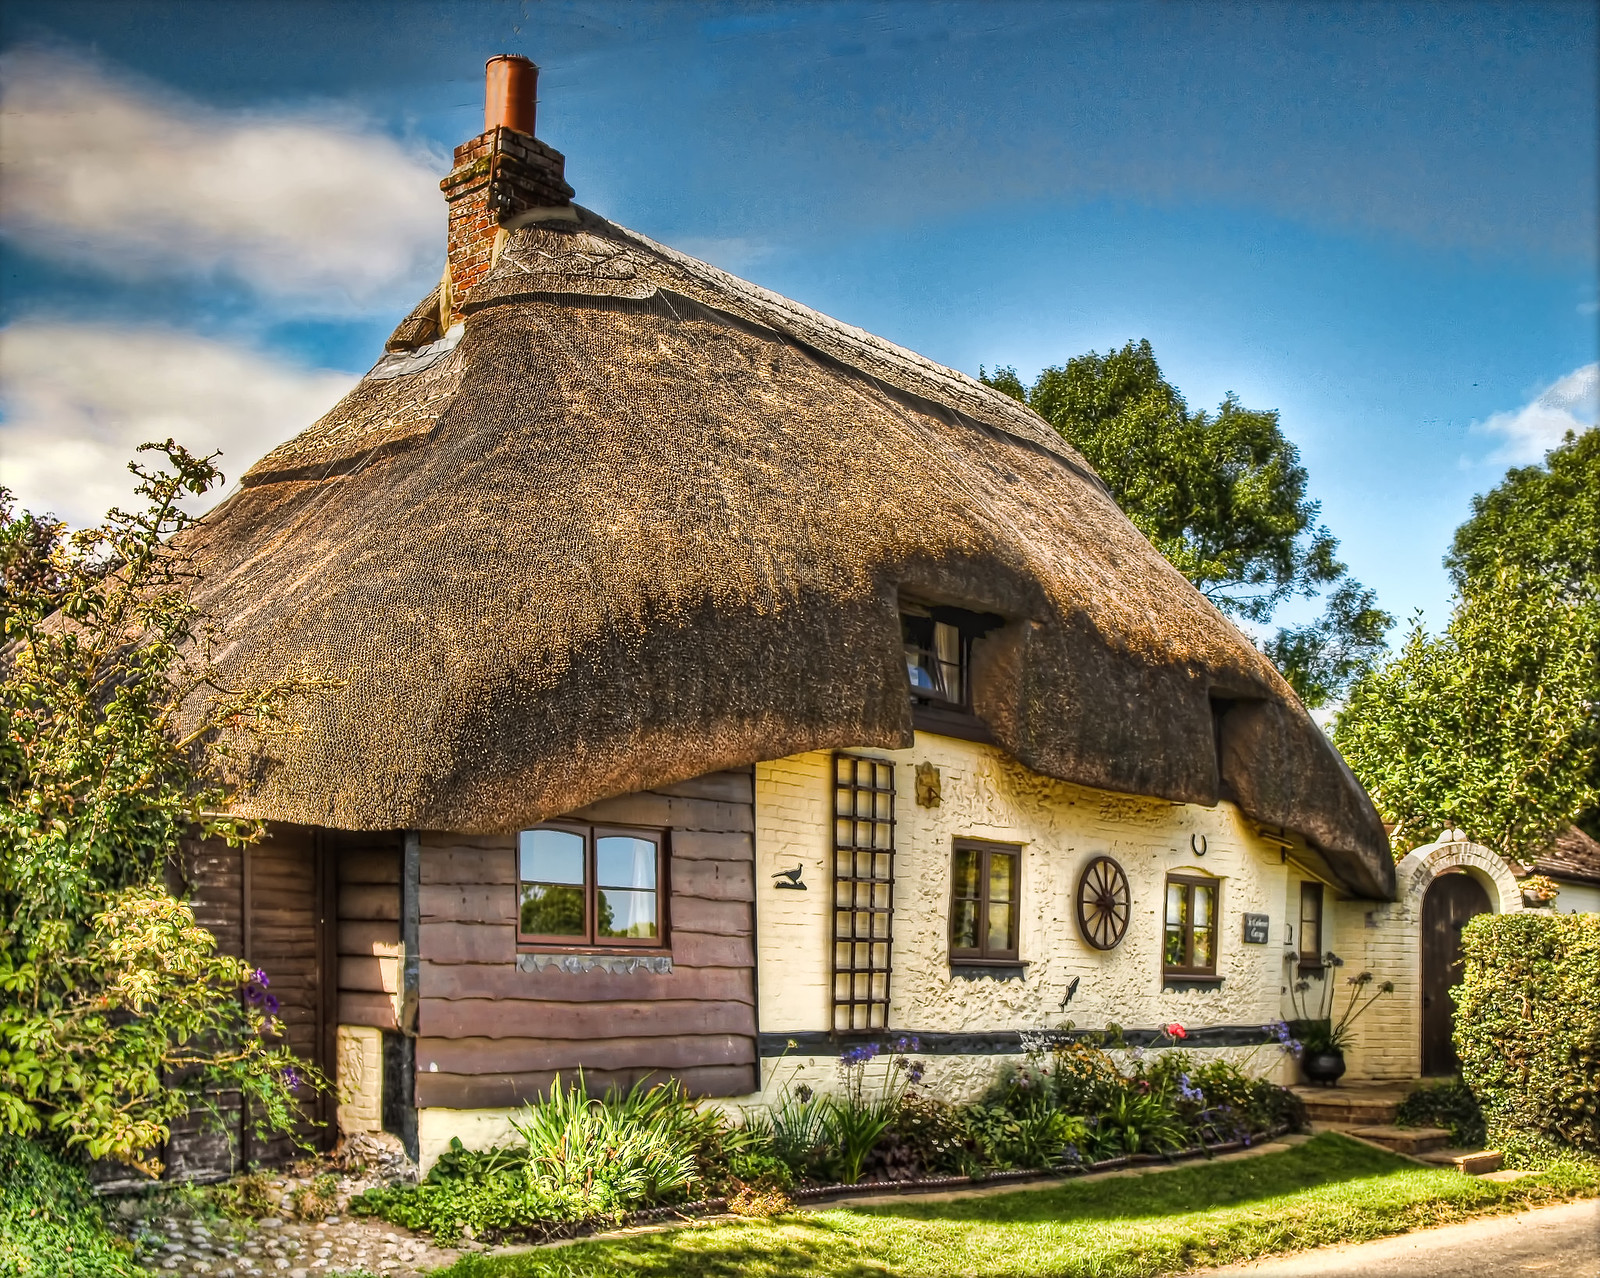 Thatched cottage in the village of Longstock in Hampshire. Credit Anguskirk